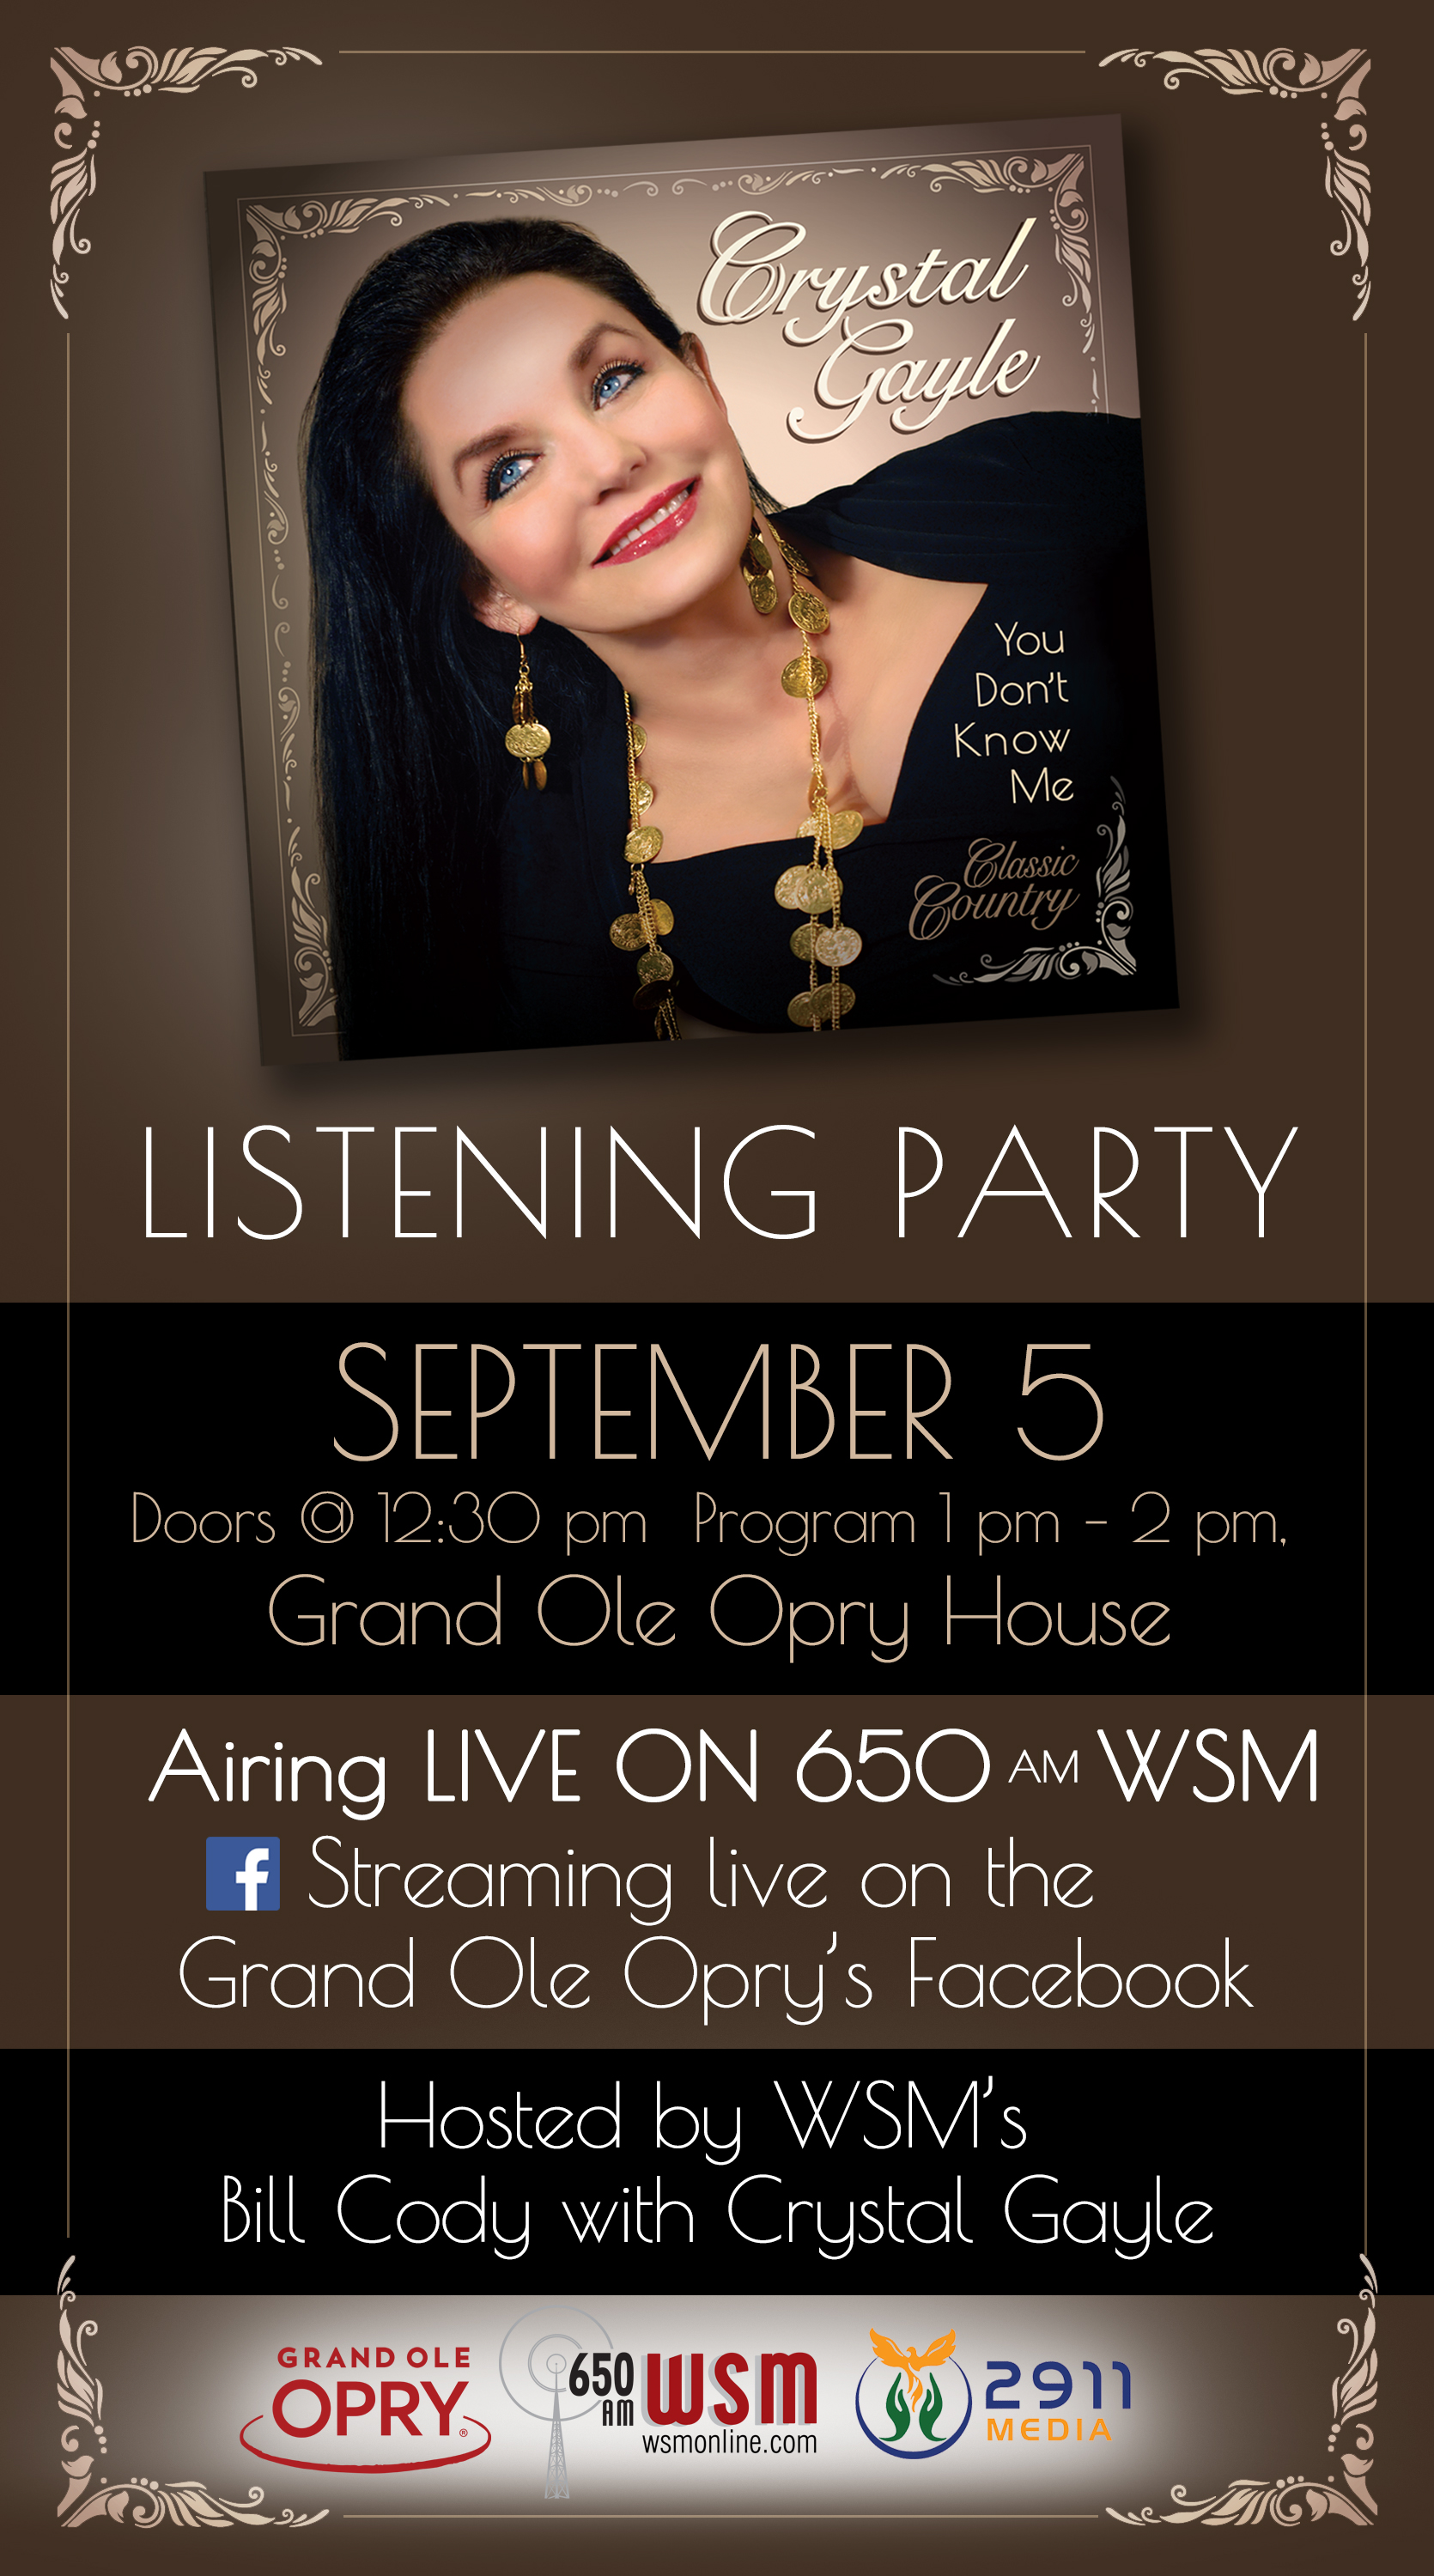 Crystal Gayle 'You Don't Know Me' Listening Party At The Grand Ole Opry House, Sept. 5 at 1pm